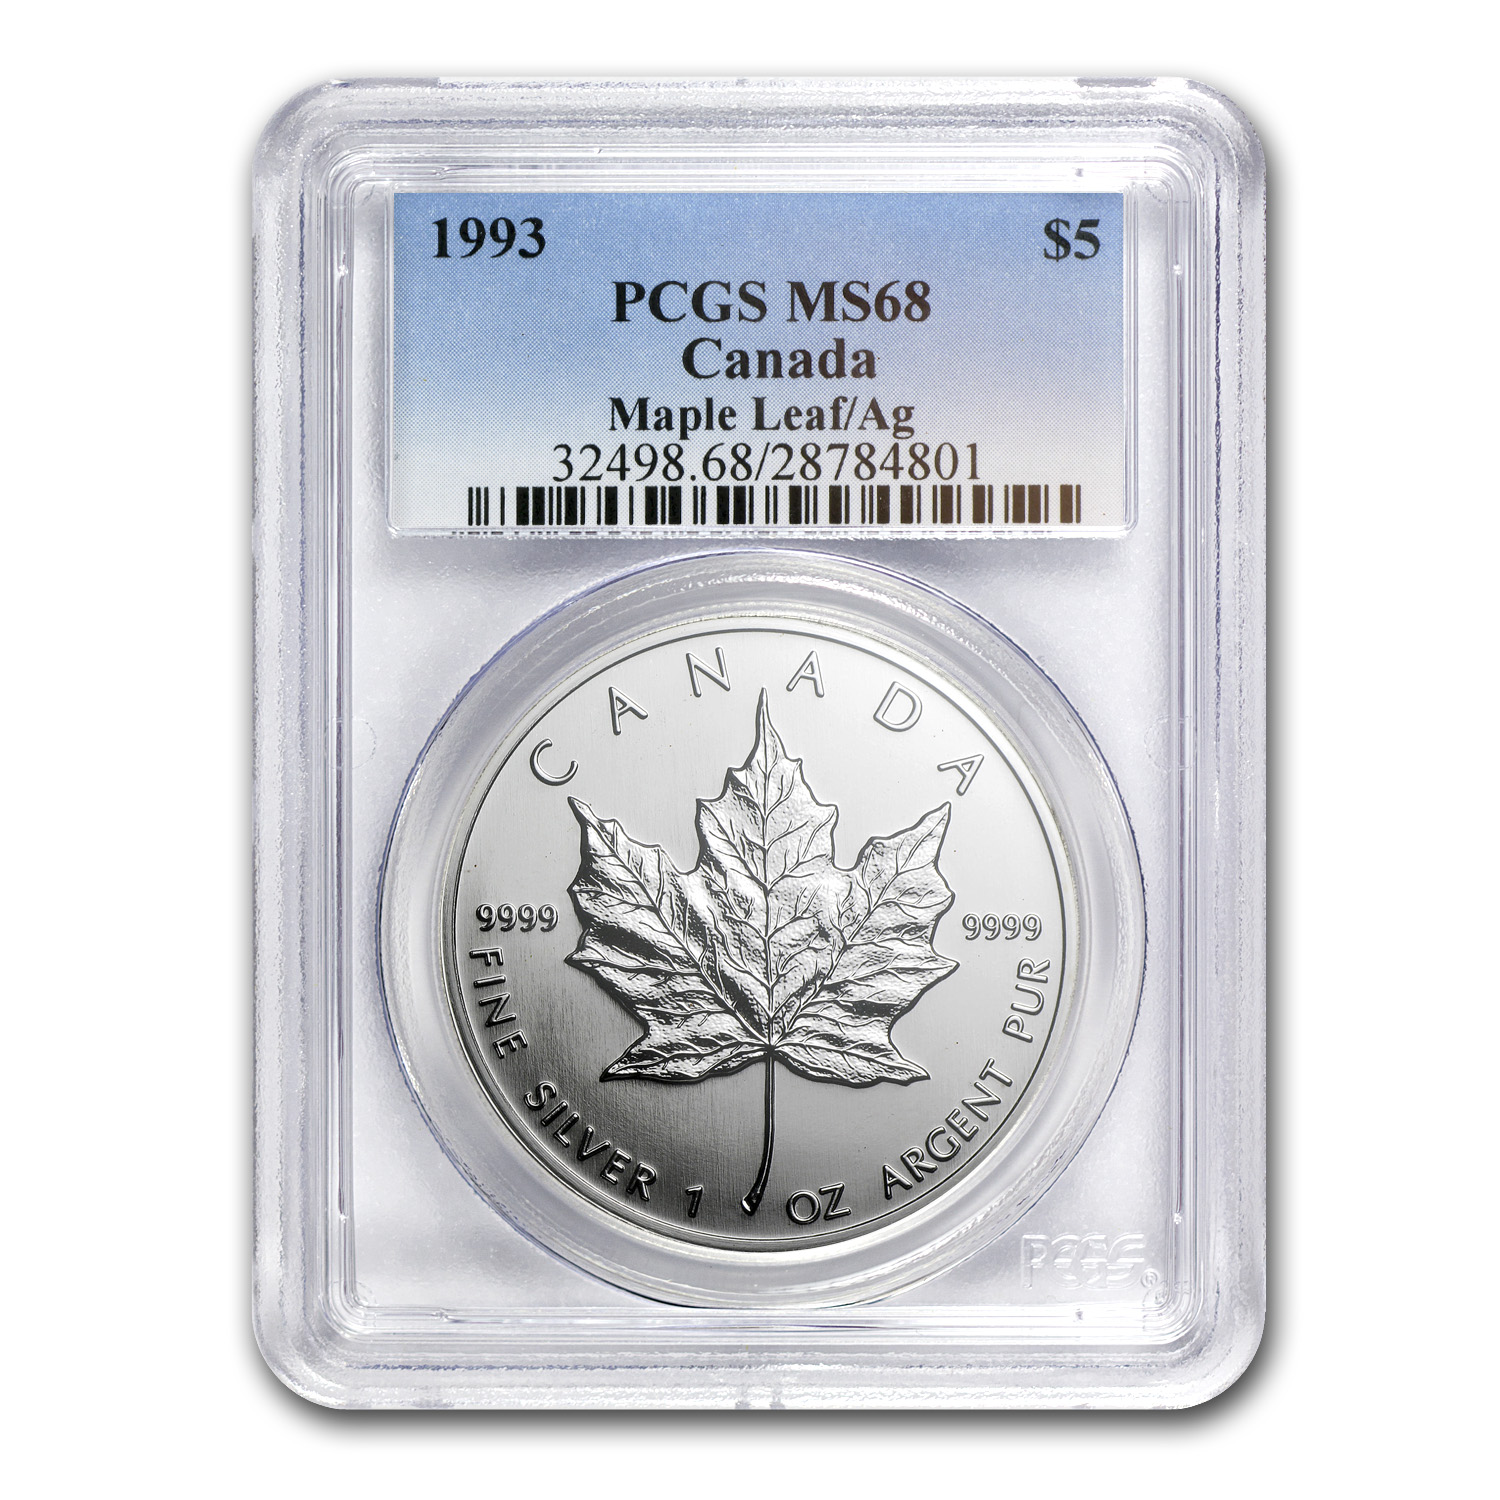 1993 Canada 1 oz Silver Maple Leaf MS-68 PCGS